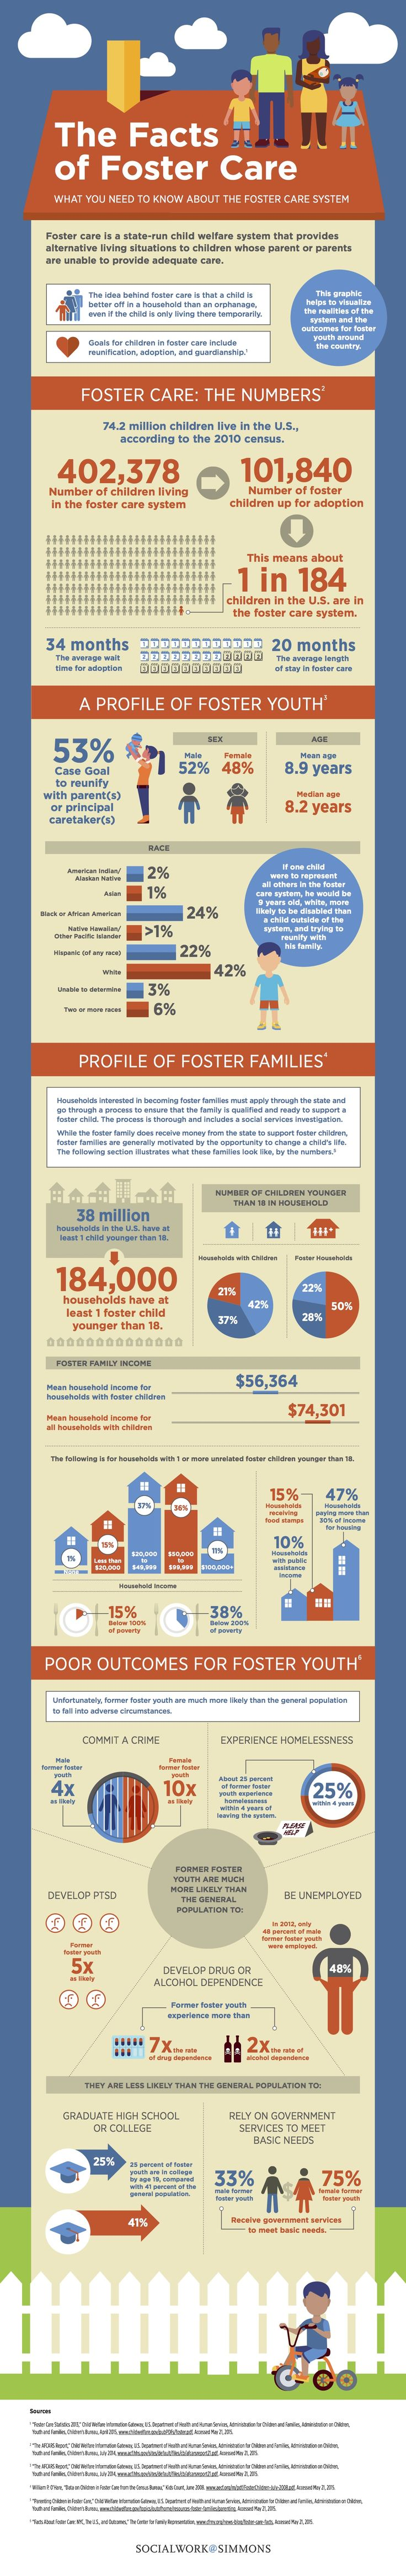 Demystifying the Foster Care System (INFOGRAPHIC) - SocialWork@Simmons